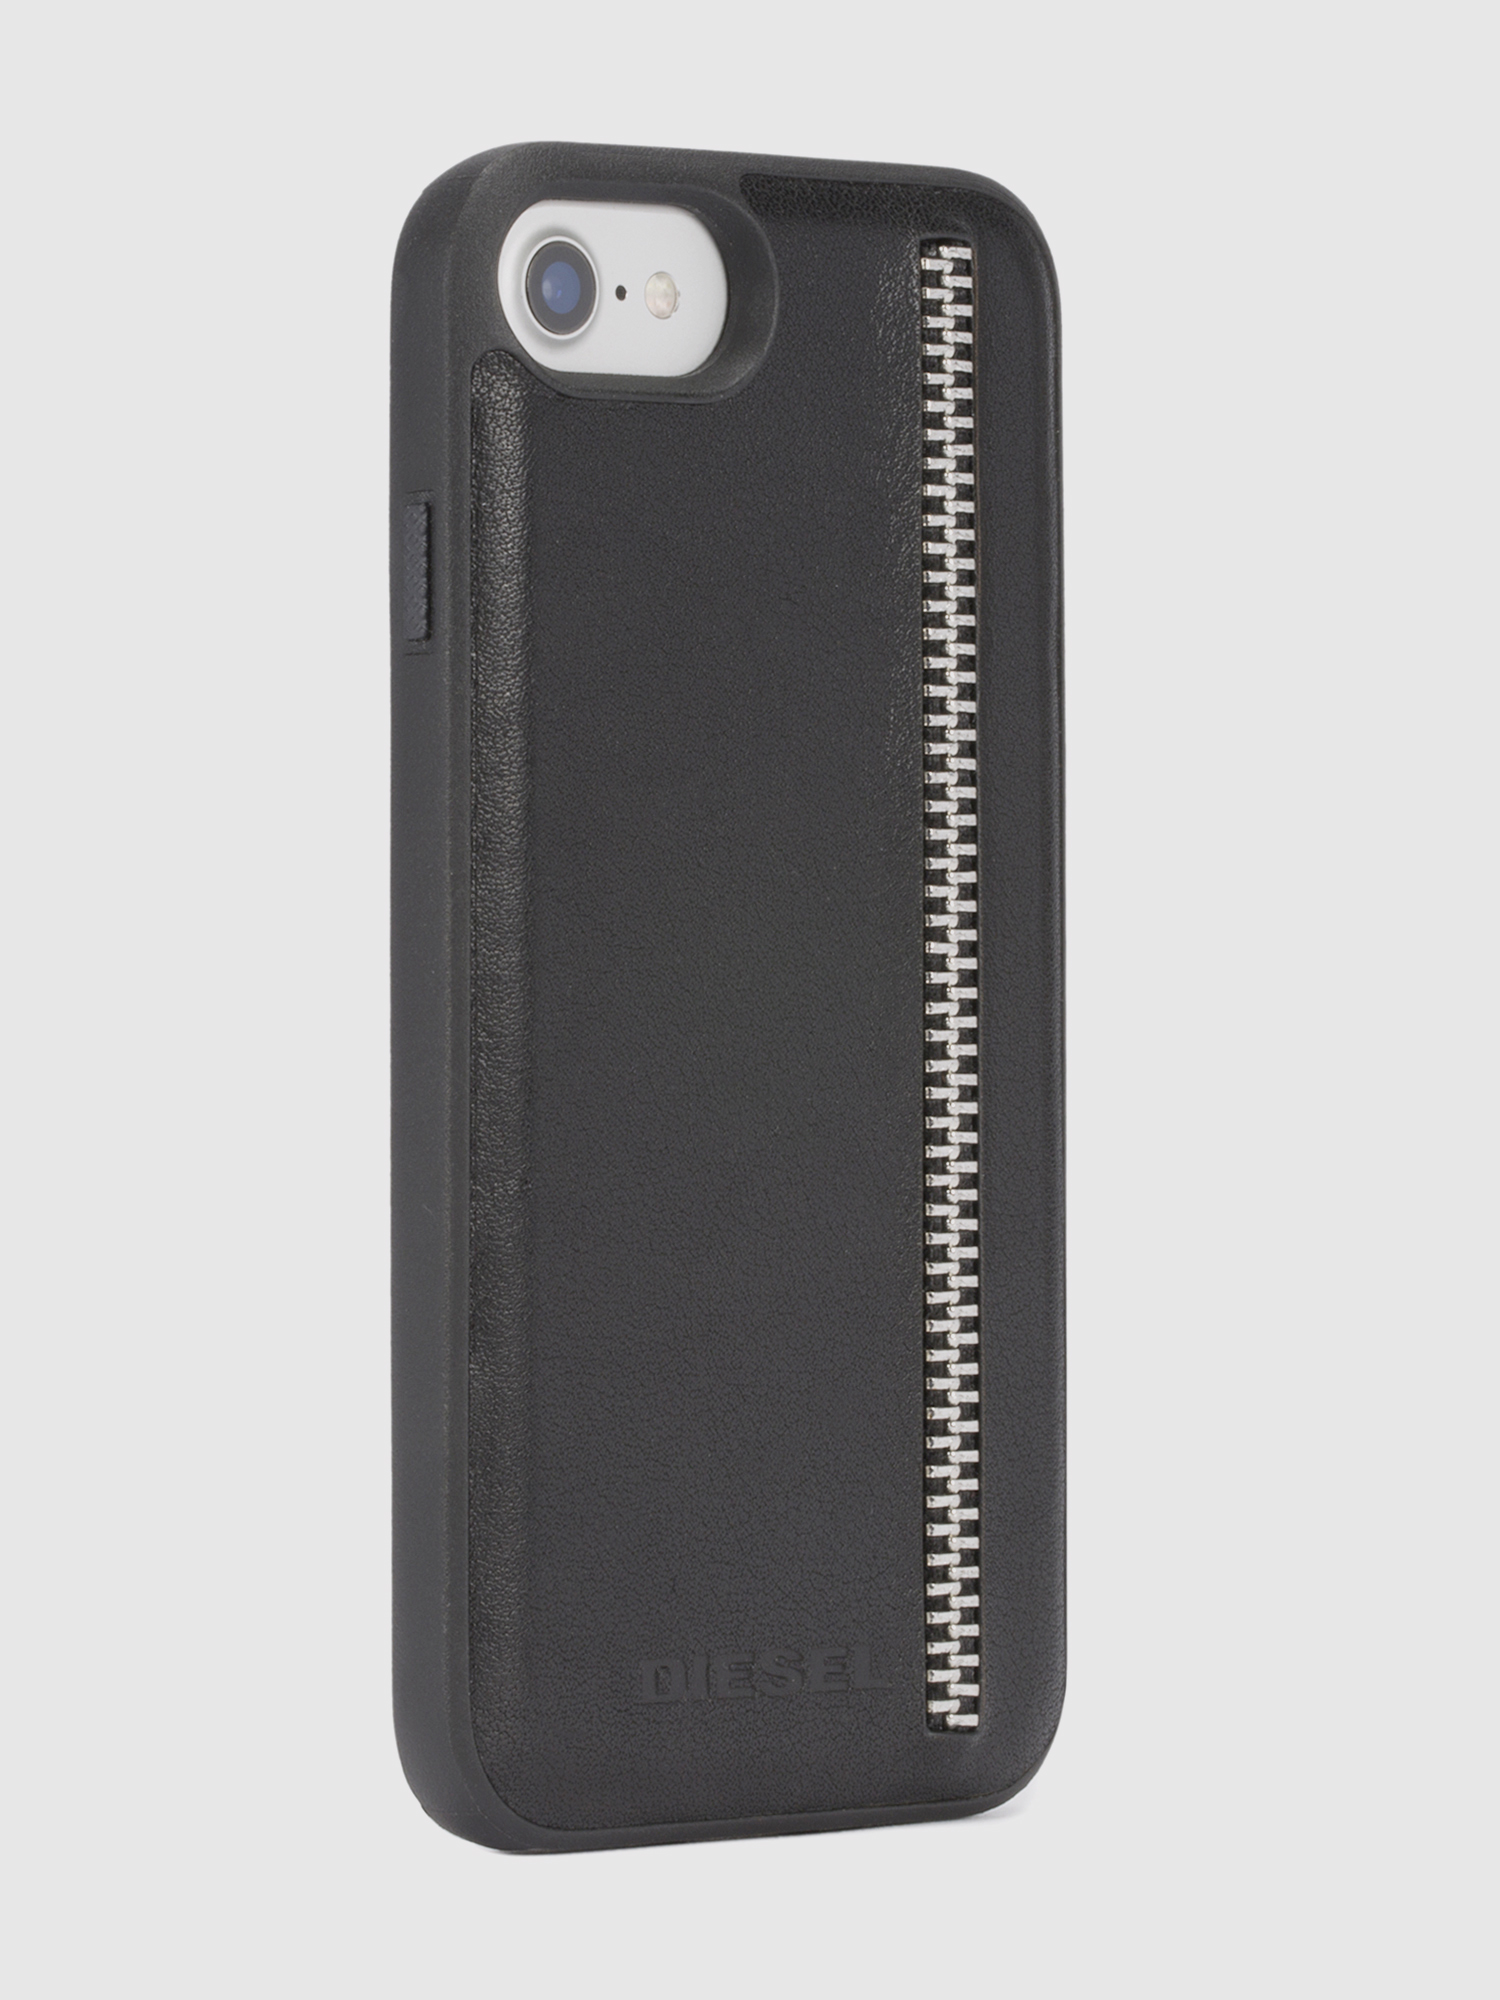 Diesel - ZIP BLACK LEATHER IPHONE 8 PLUS/7 PLUS/6s PLUS/6 PLUS CASE,  - Cases - Image 5